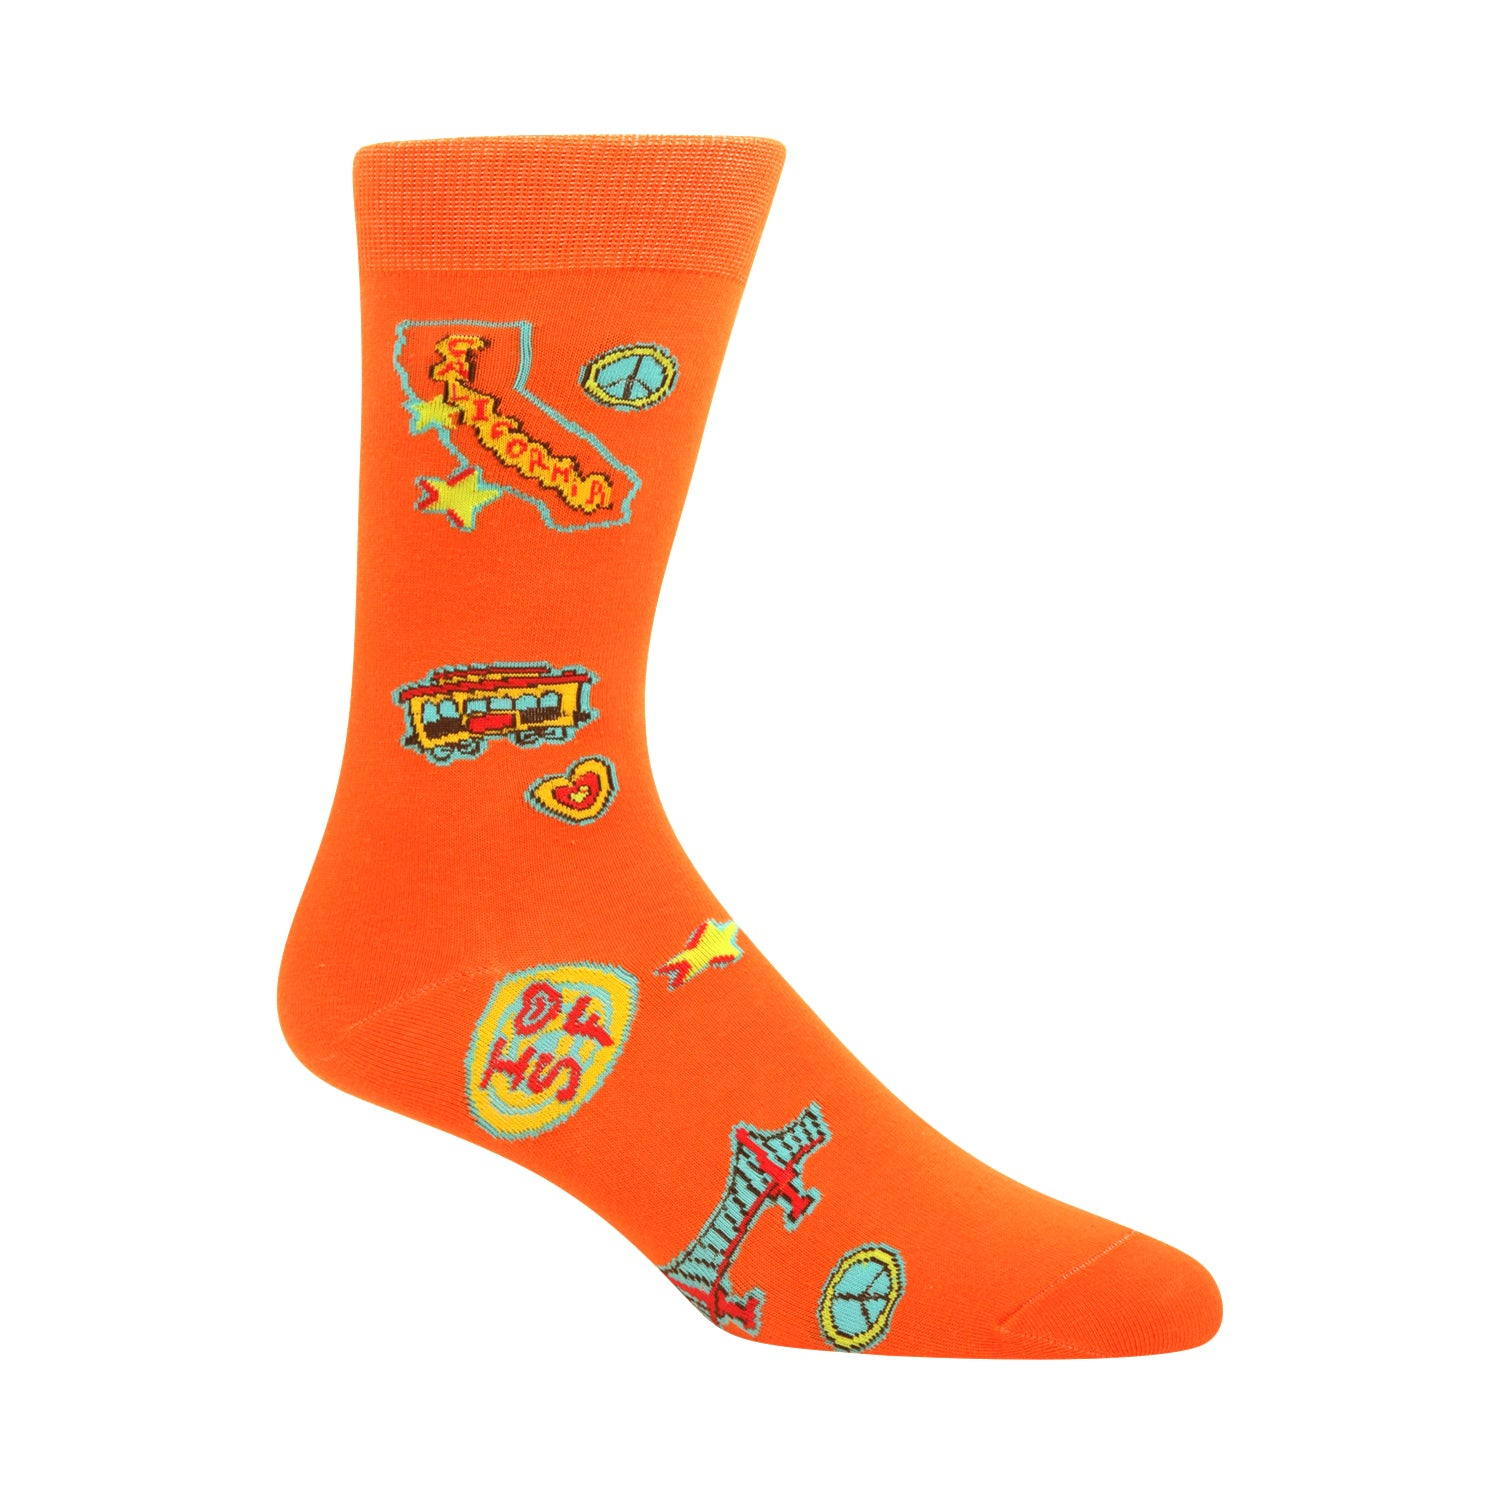 San Francisco Men's Socks